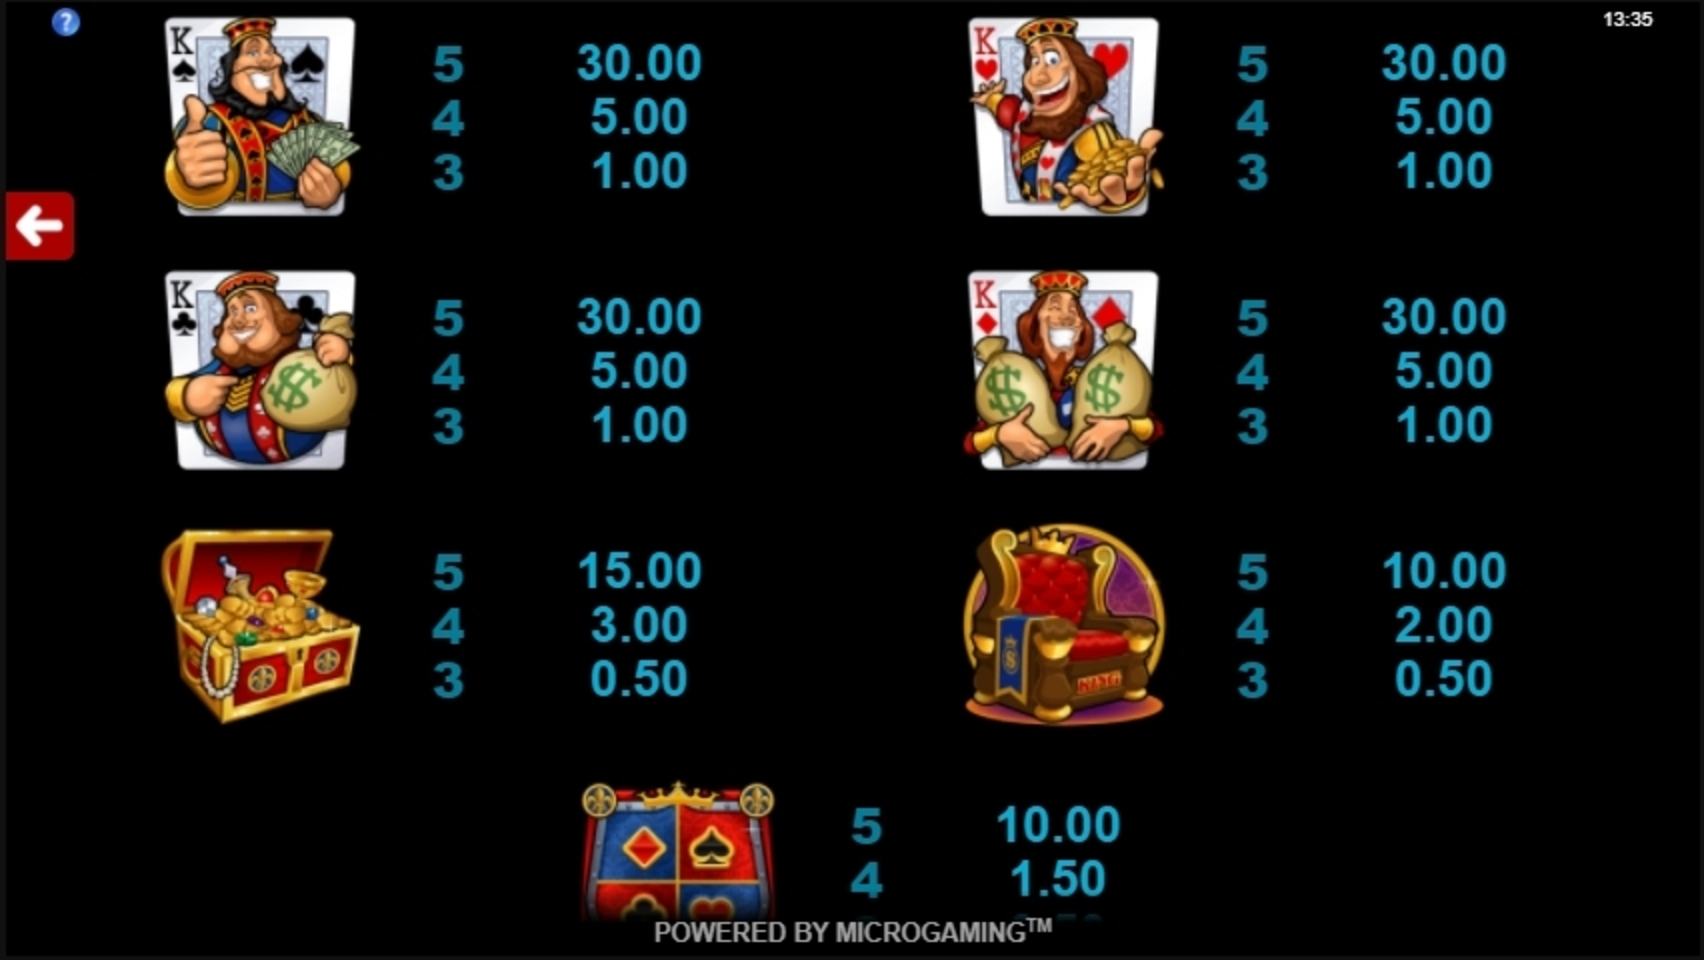 Info of Kings of Cash Slot Game by Microgaming